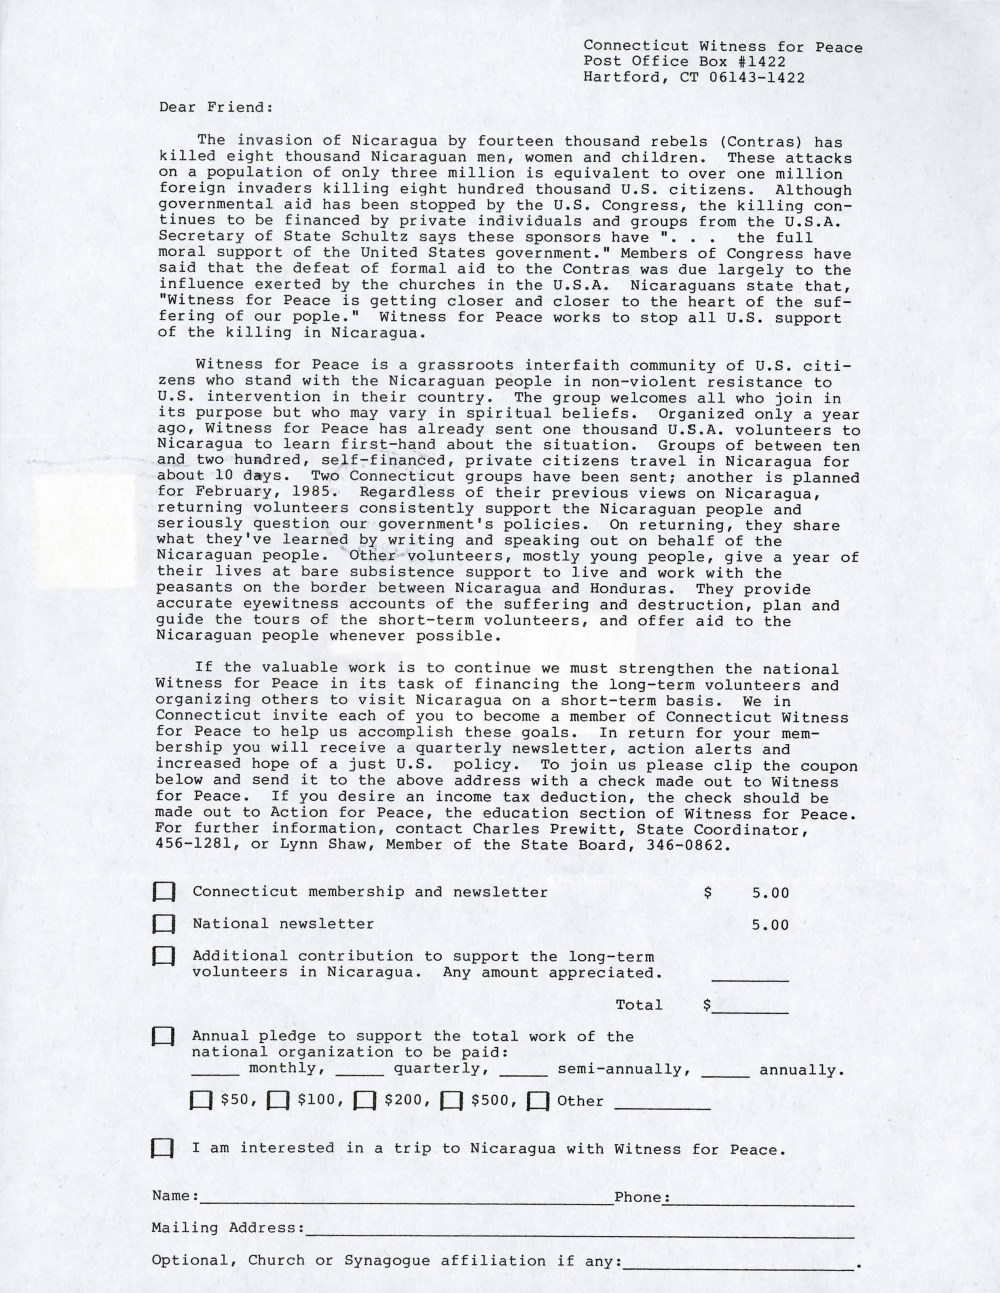 medium resolution of uconn asc 1992 0001 ct witness for peace 1985 002